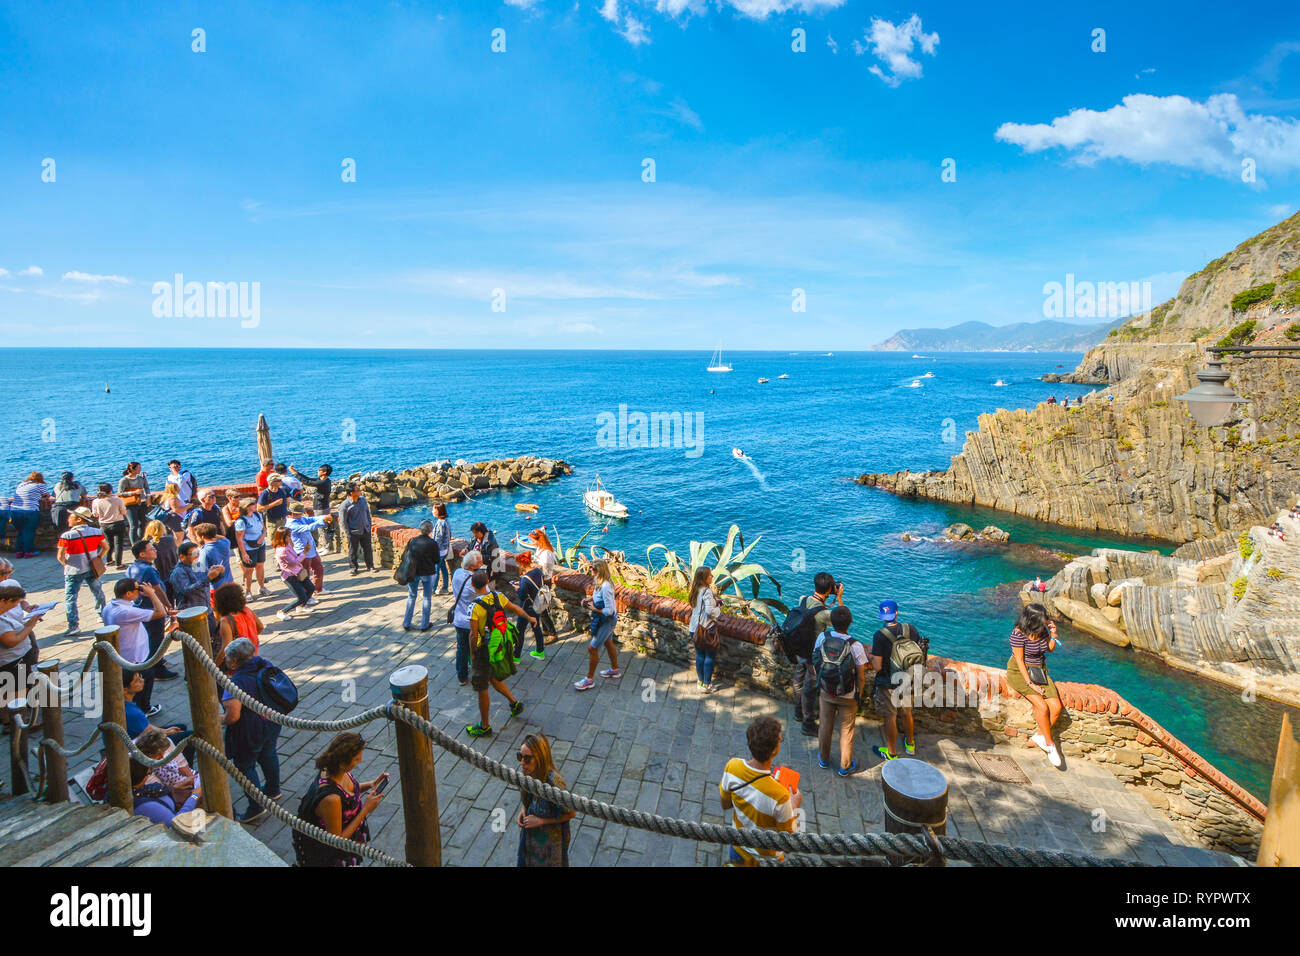 Tourists gather at the lookout point at the Cinque Terre village of Riomaggiore, Italy, with the Ligurian sea, harbor and boats behind them Stock Photo